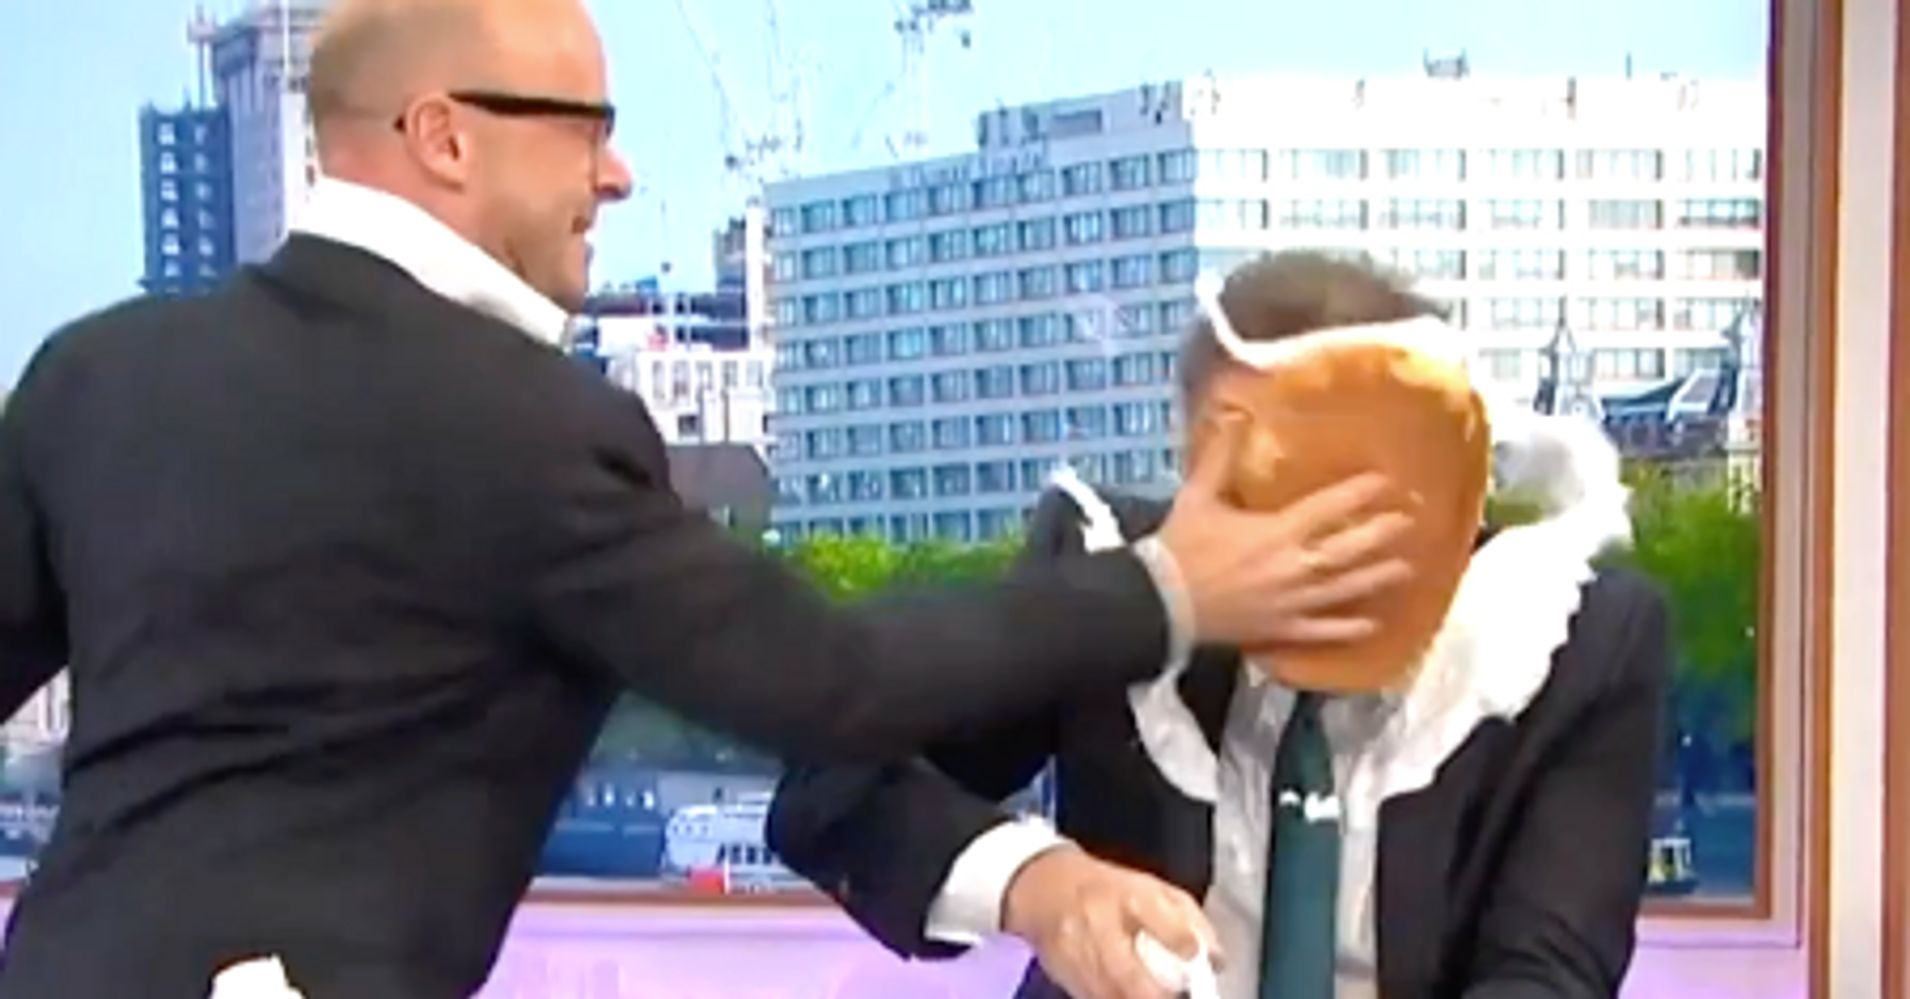 Piers Morgan Gets Pie In The Face On Live TV For Daniel Craig 'Papoose' Comments